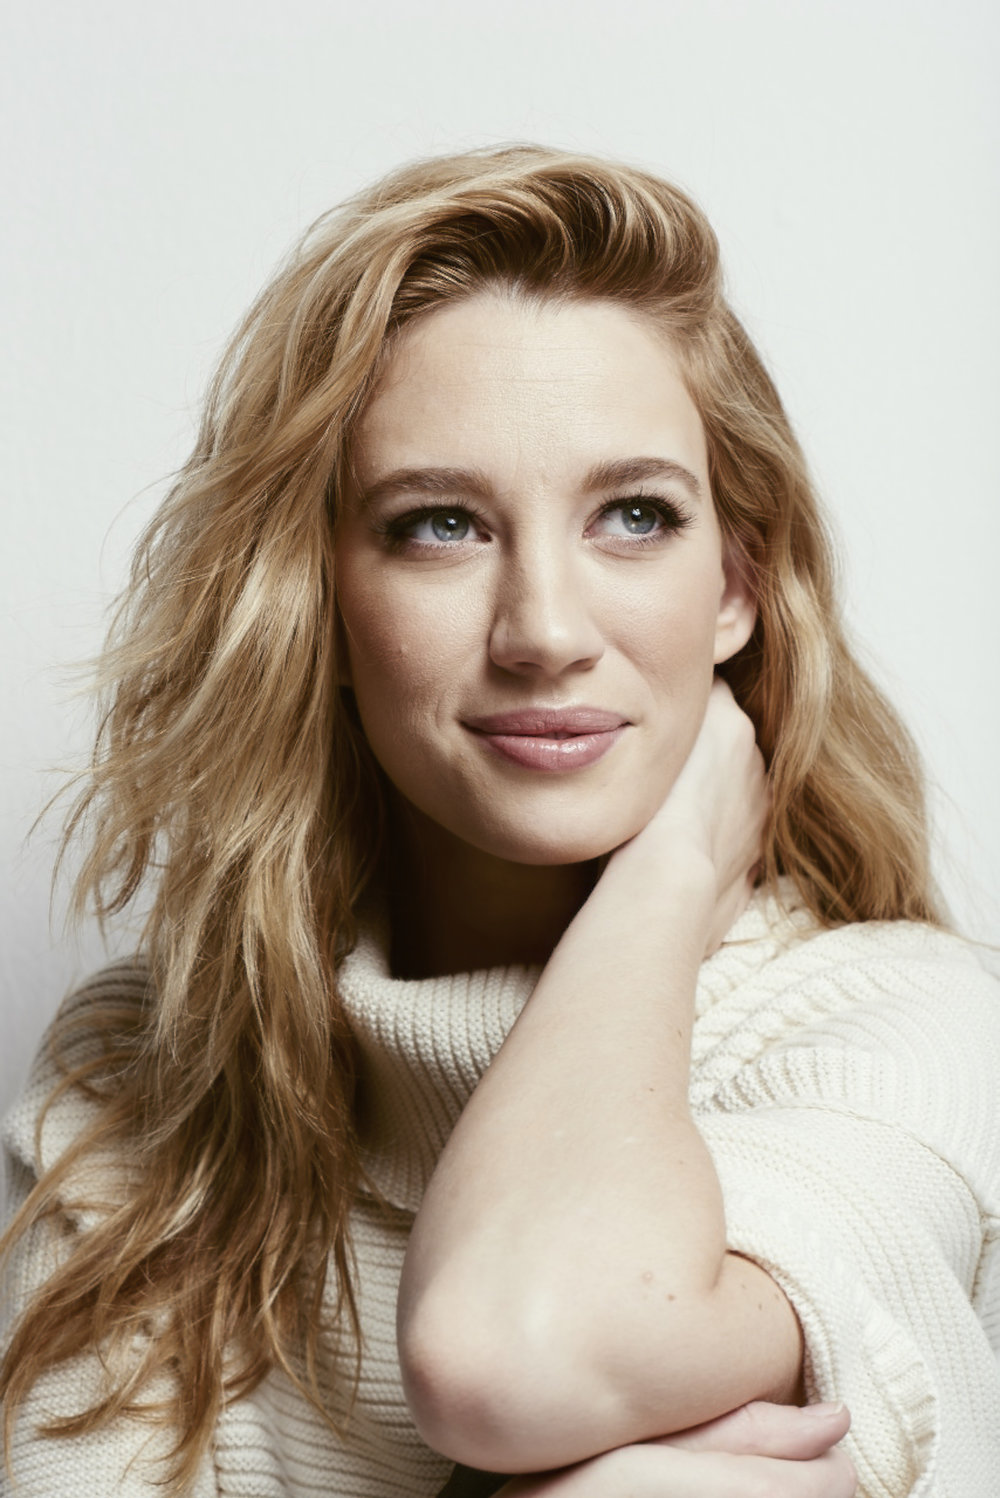 Yael Grobglas nudes (68 photos), young Selfie, Snapchat, see through 2017